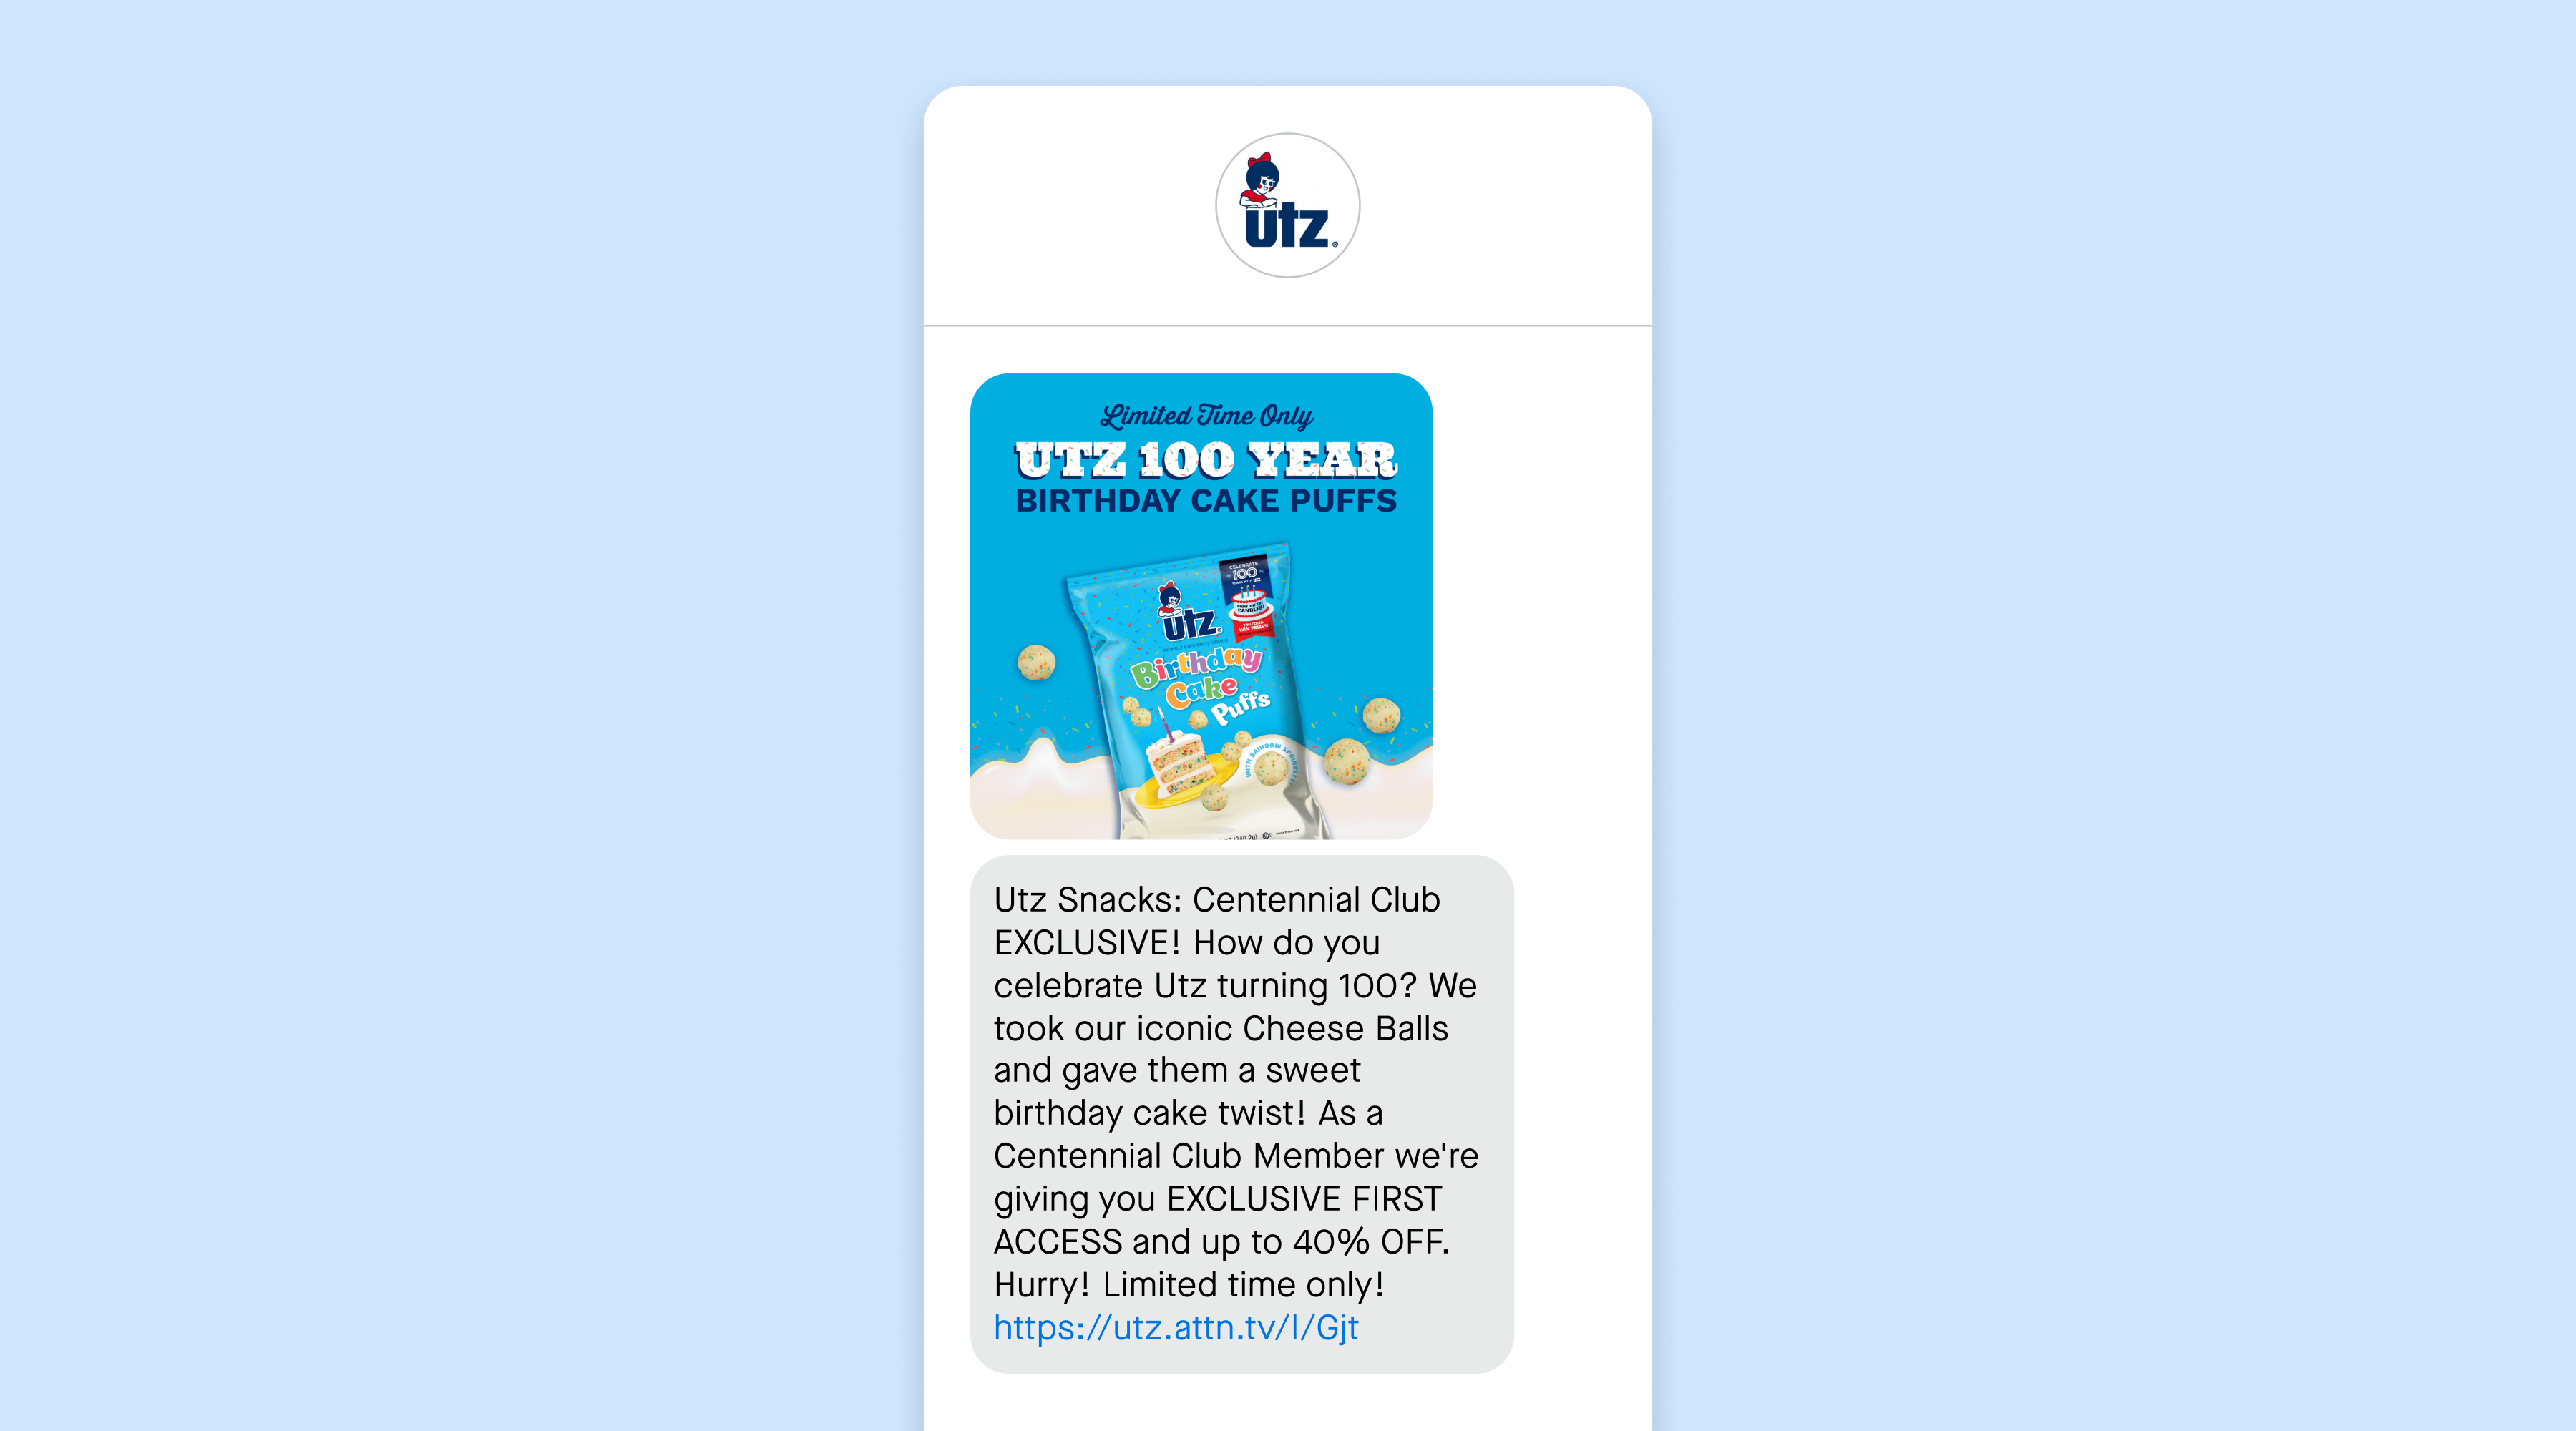 UTZ limited time offer